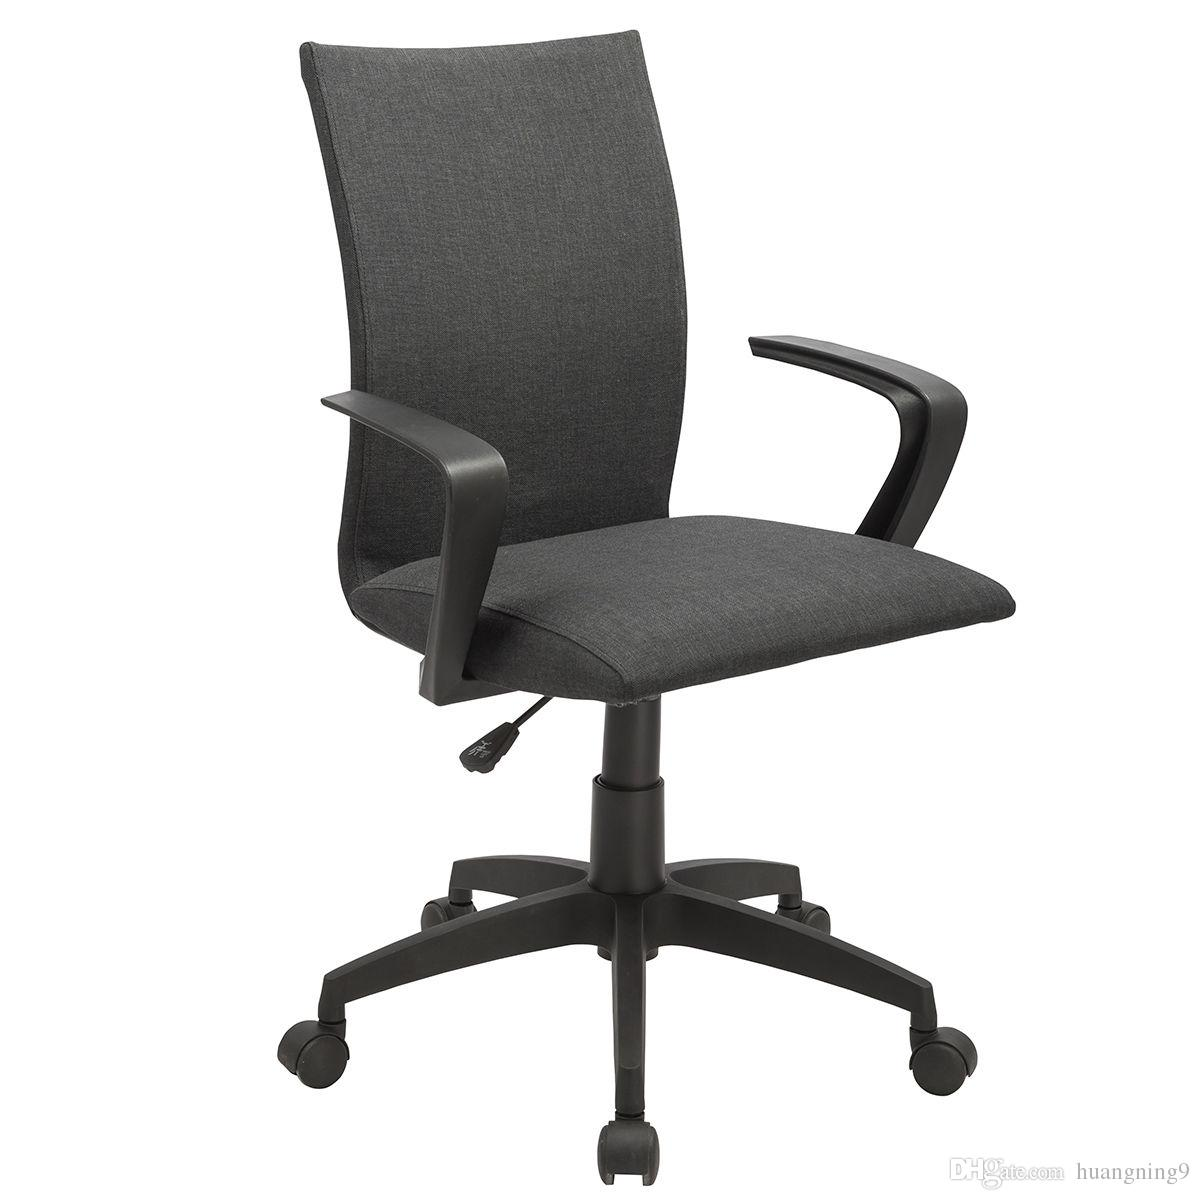 office suppliers from adjustable china cheap computer buy chairs chair directly quality ergonomic pin